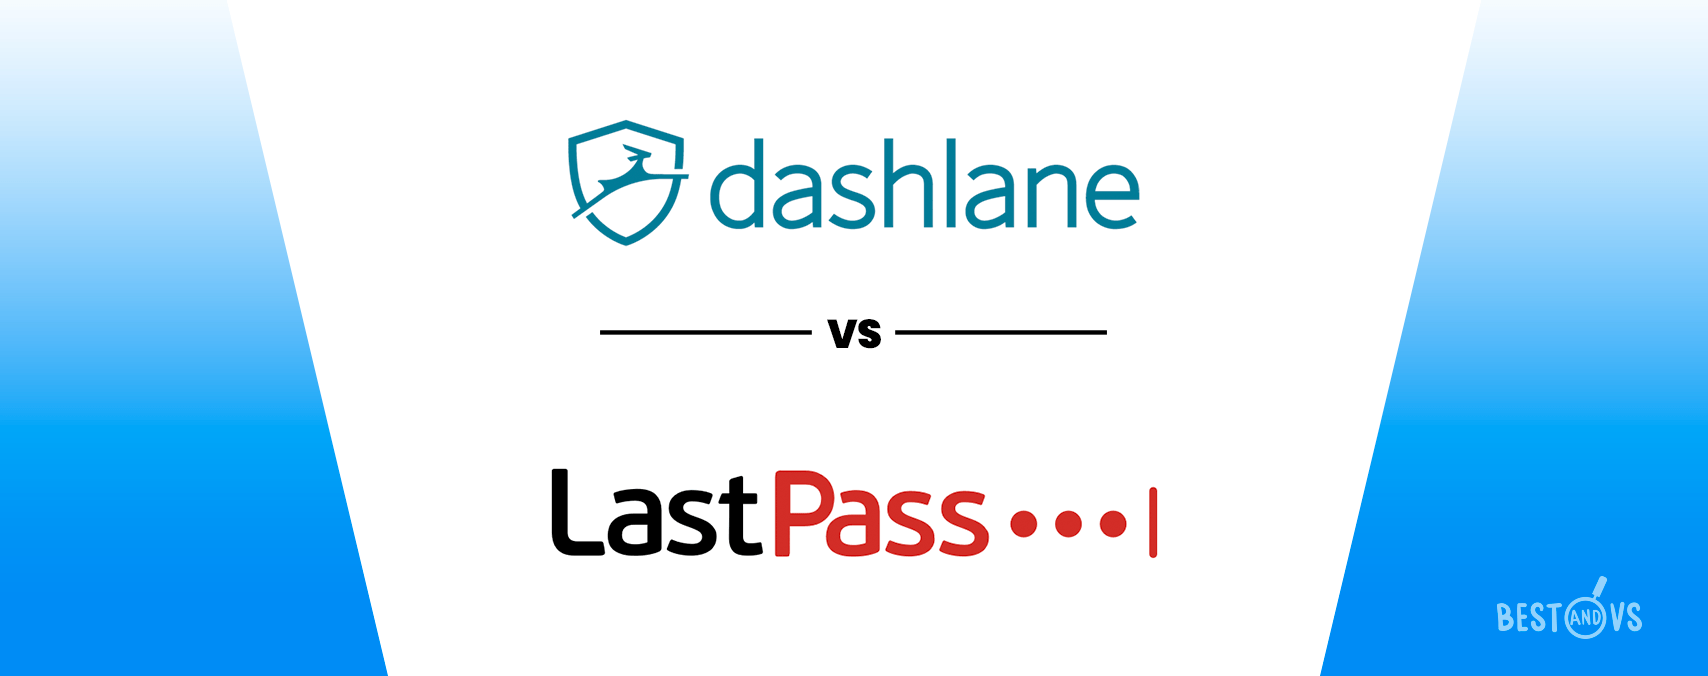 Dashlane VS LastPass 2019 (Review & Comparison)